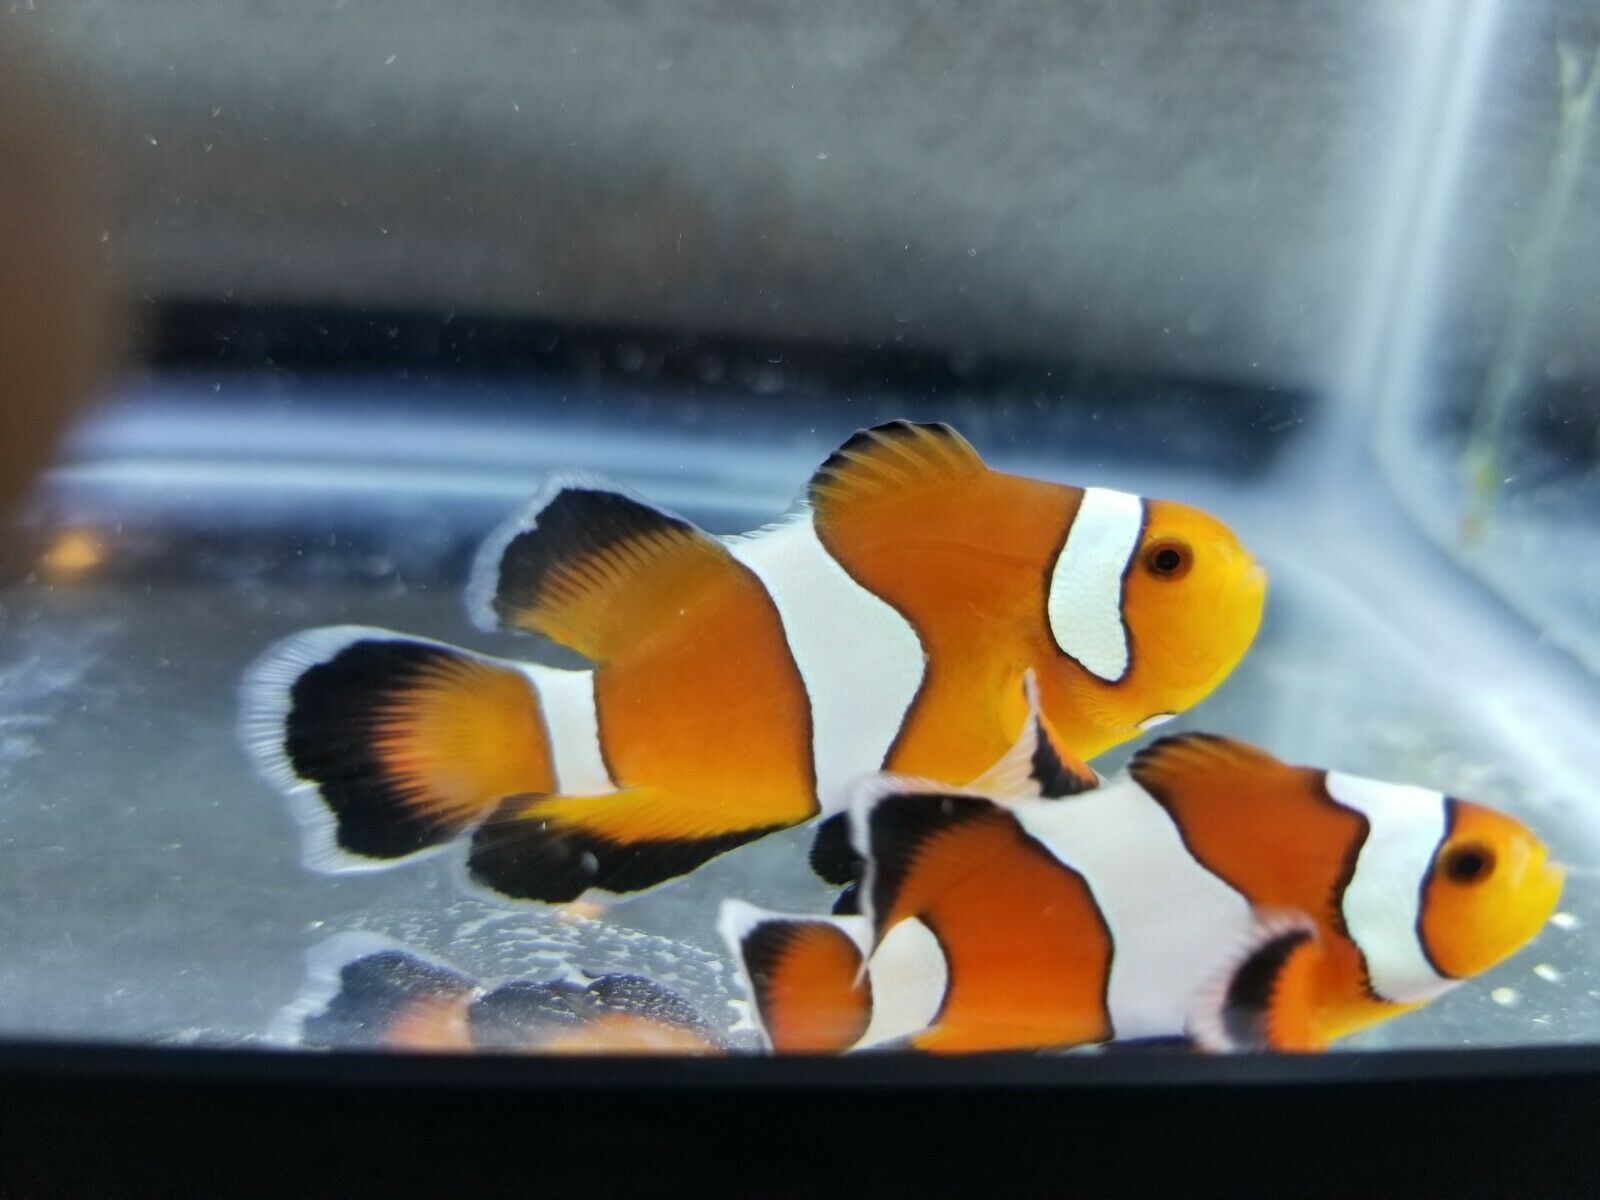 Roundtail Longfin Clownfish Medium Pair 50 00 One Day Shipping Clown Fish Marine Aquarium Fish Aquarium Fish